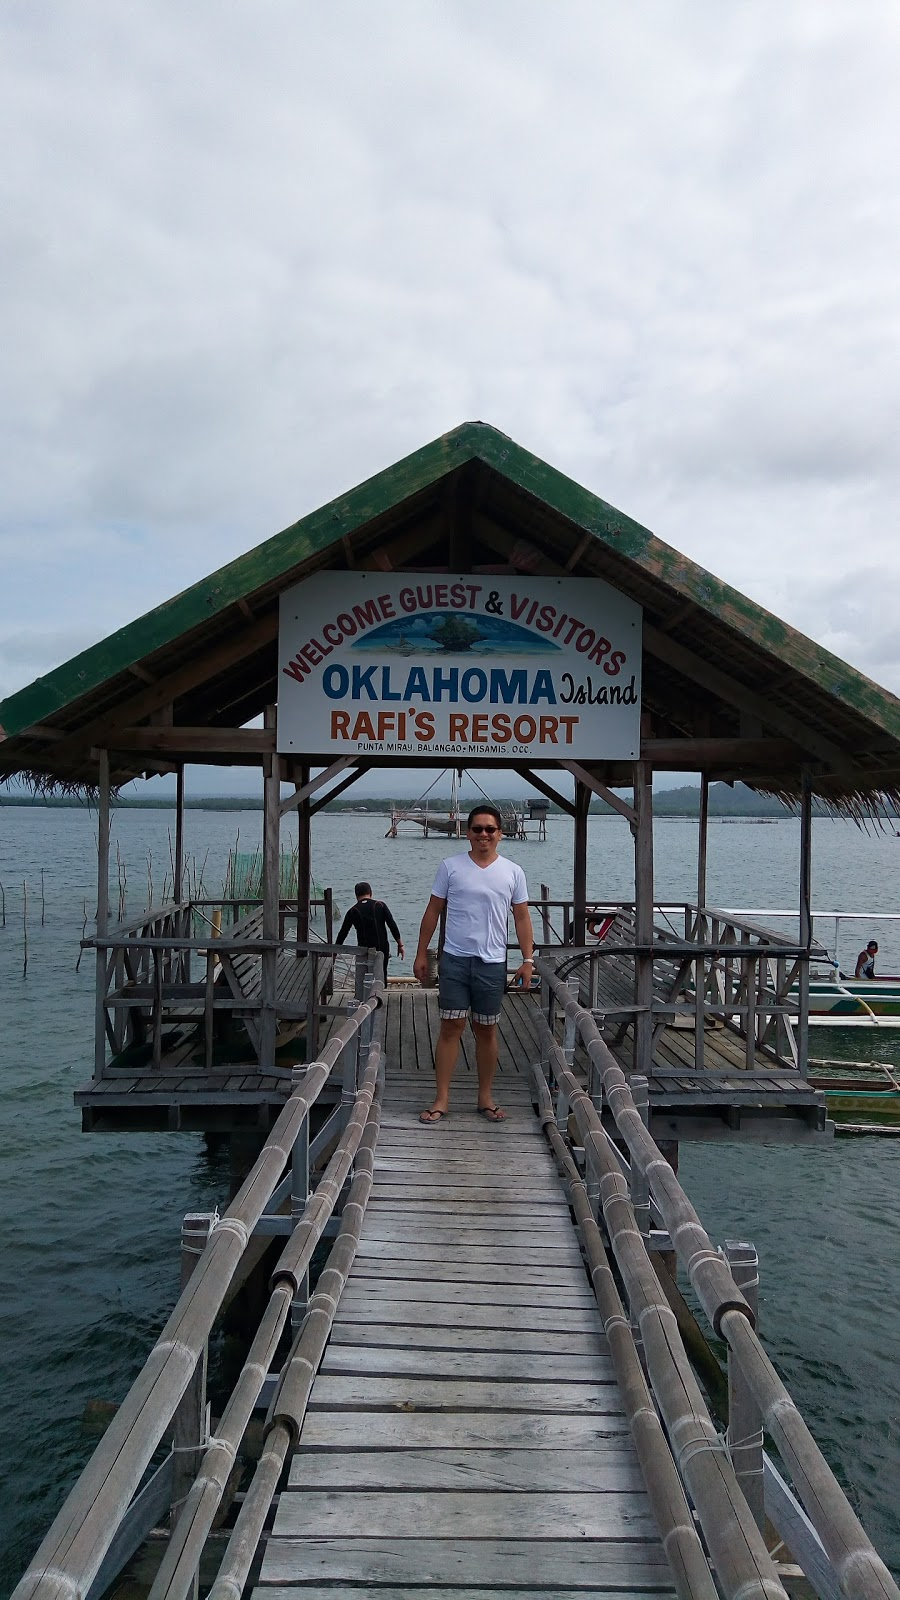 Oklahoma Islands, Misamis Occidental